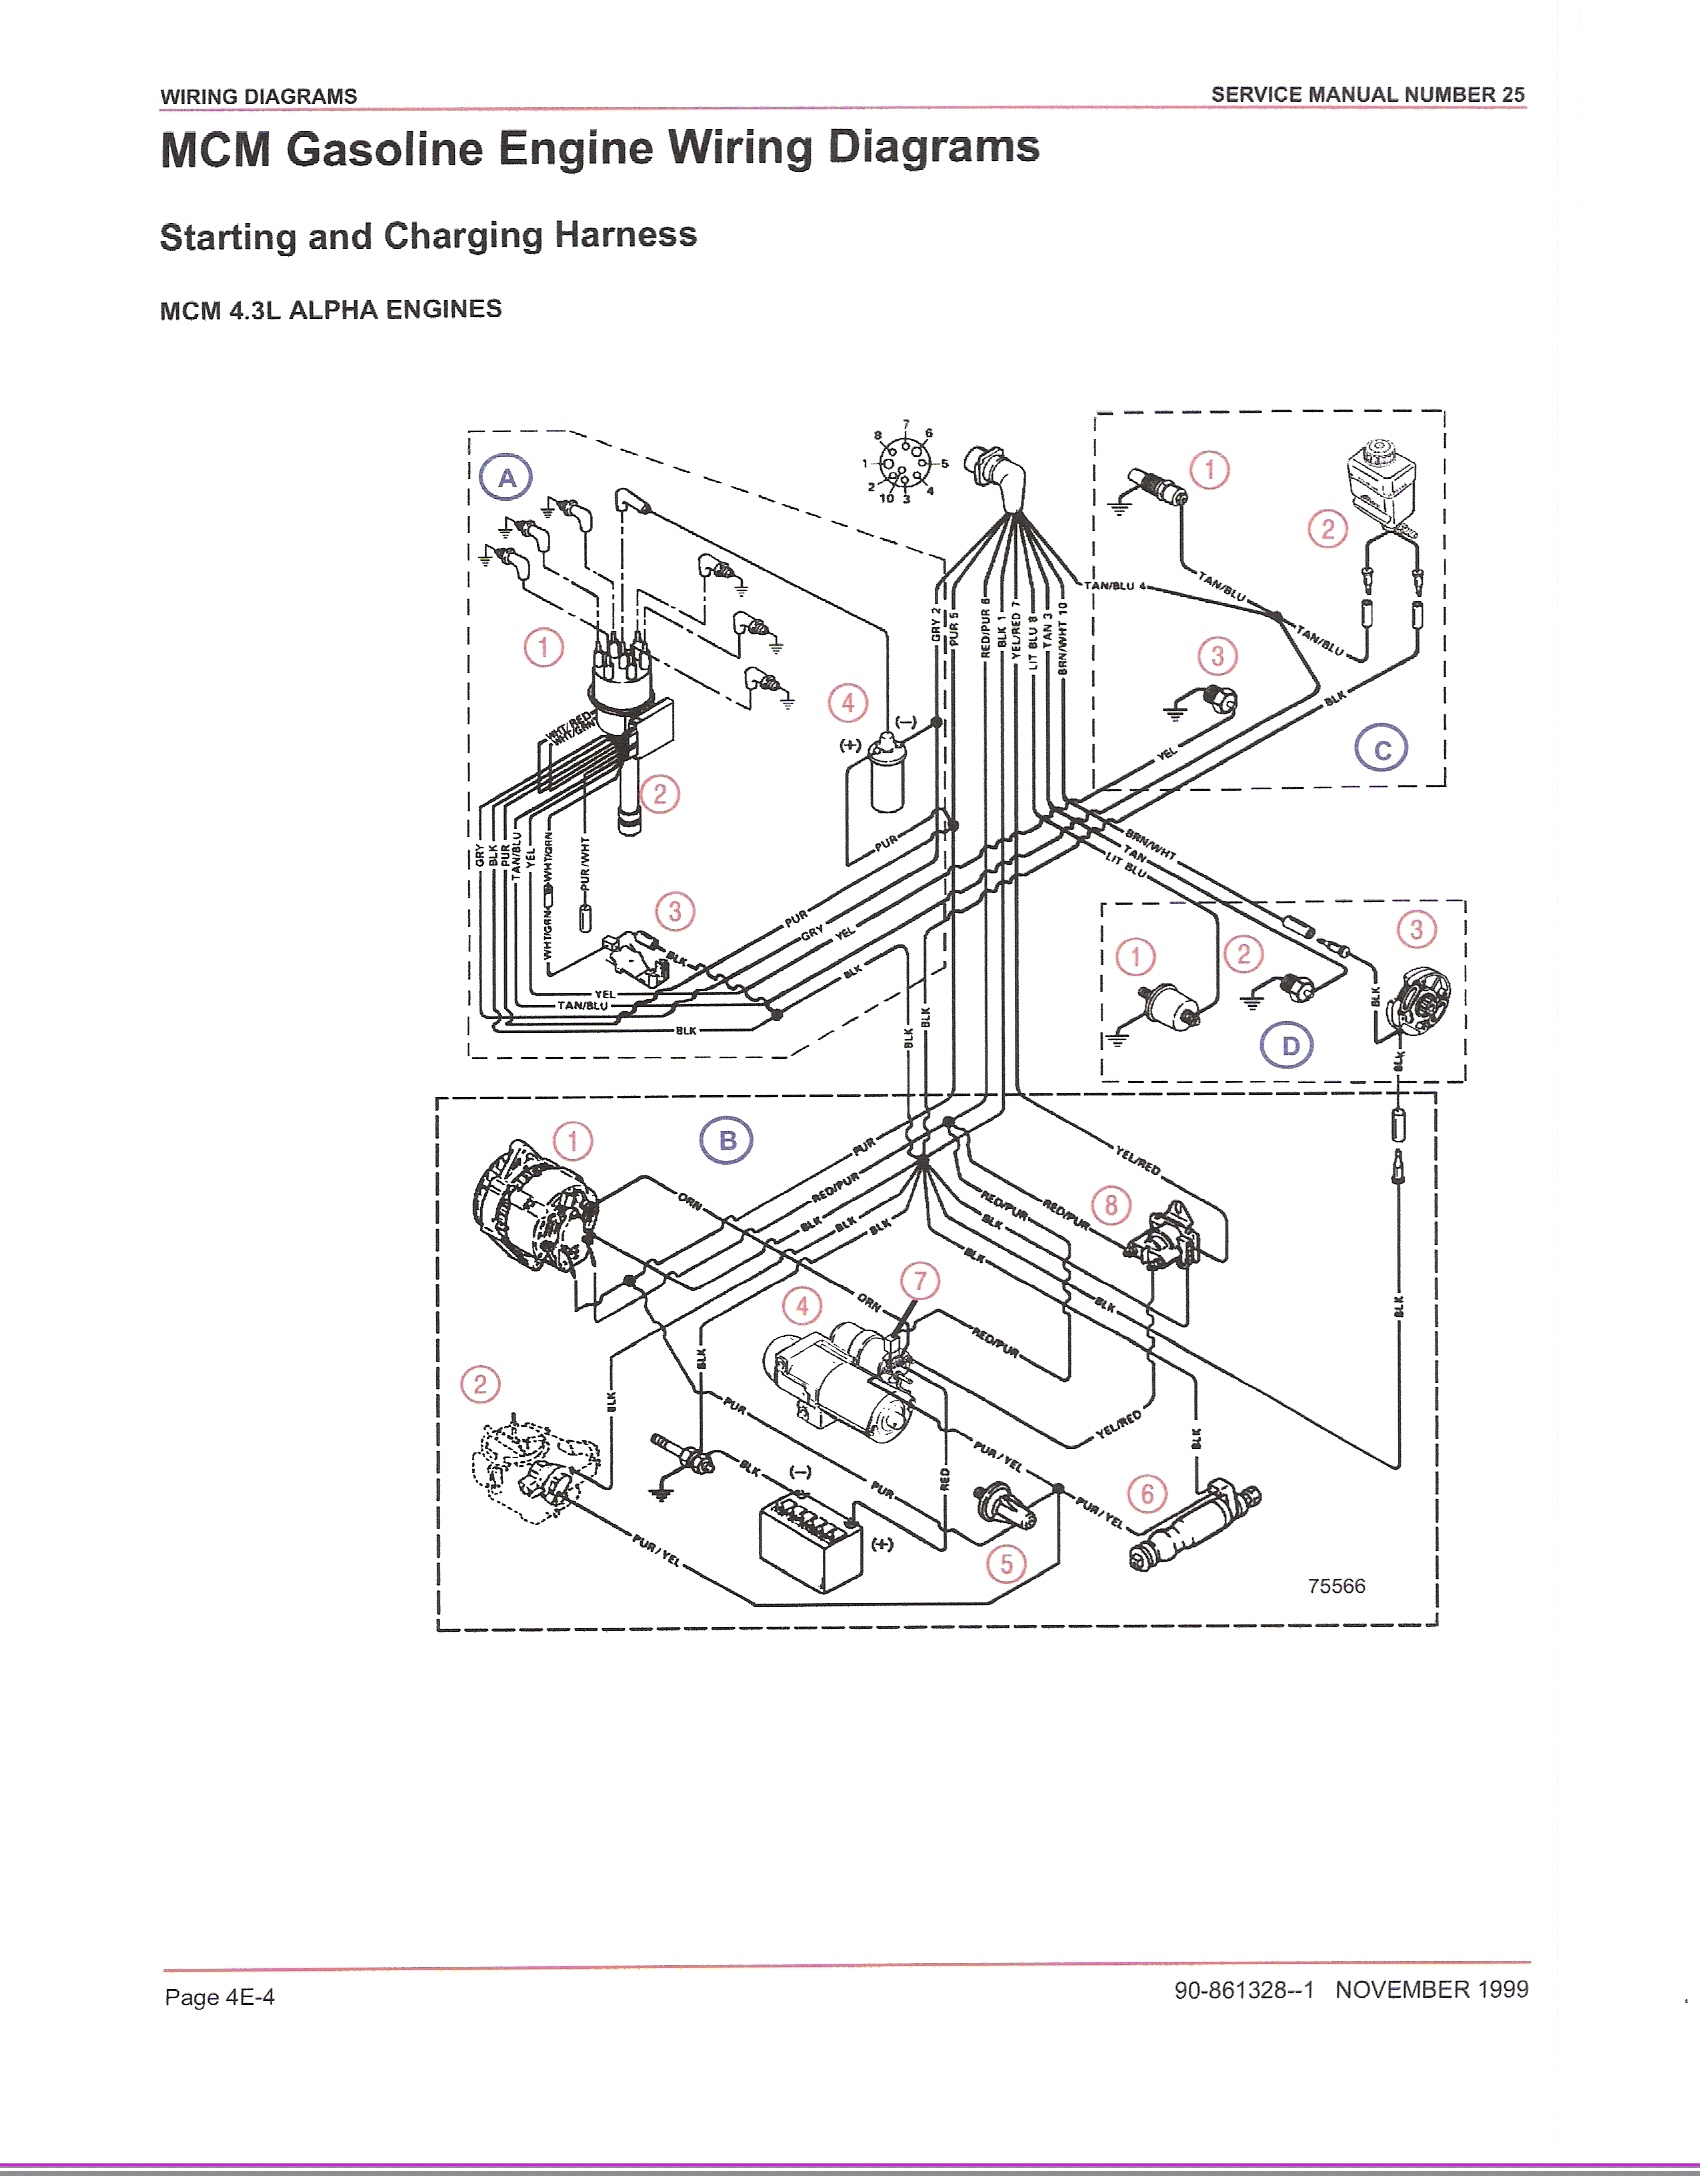 Wiring Diagram For Mercruiser Stern Drive